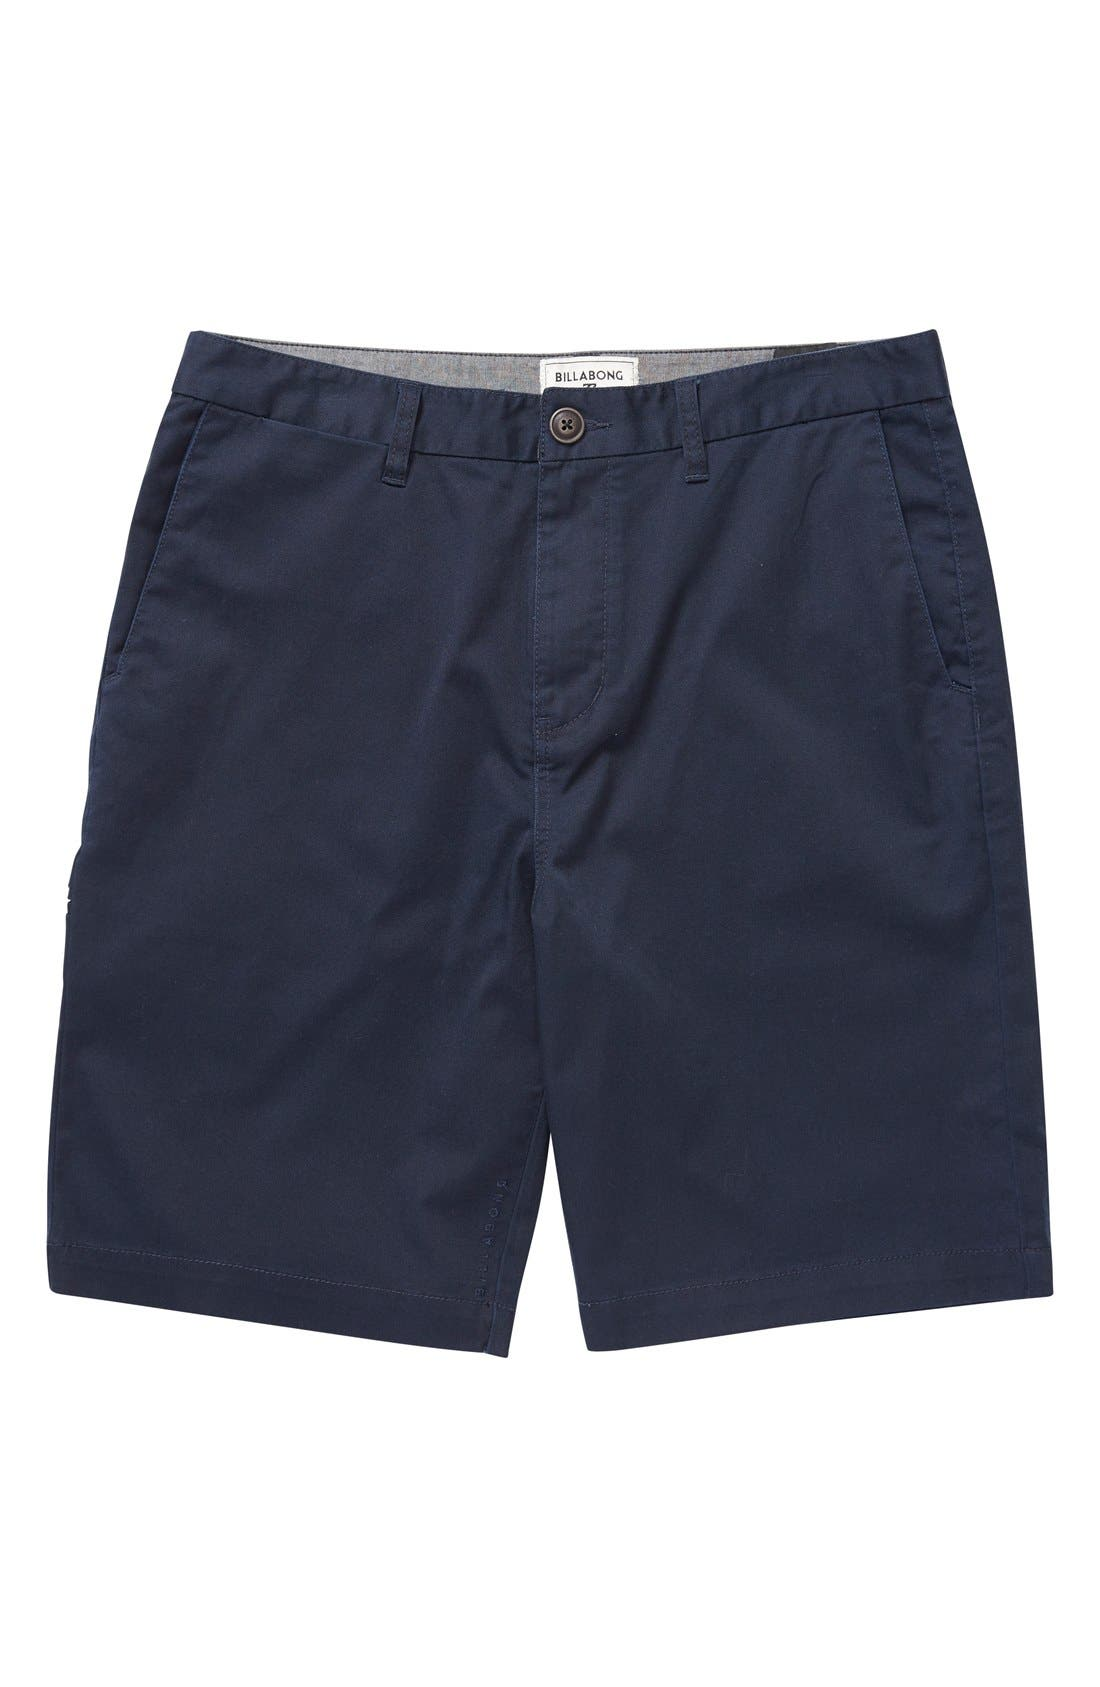 'Carter' Cotton Twill Shorts,                             Main thumbnail 5, color,